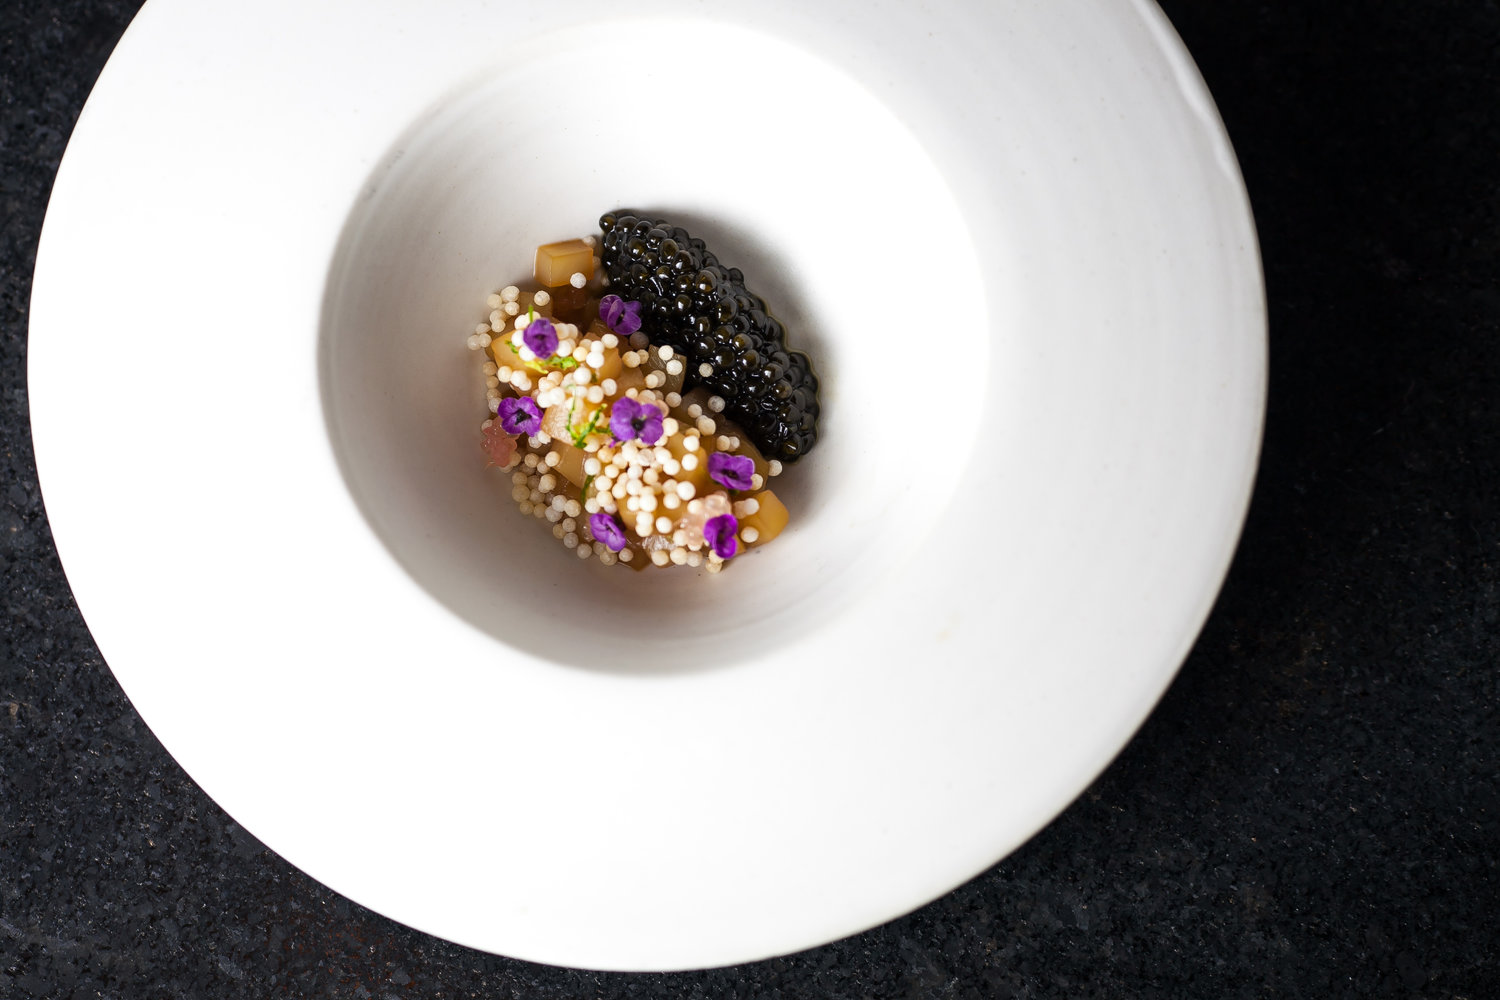 A large round white bowl with caviar and purple flowers